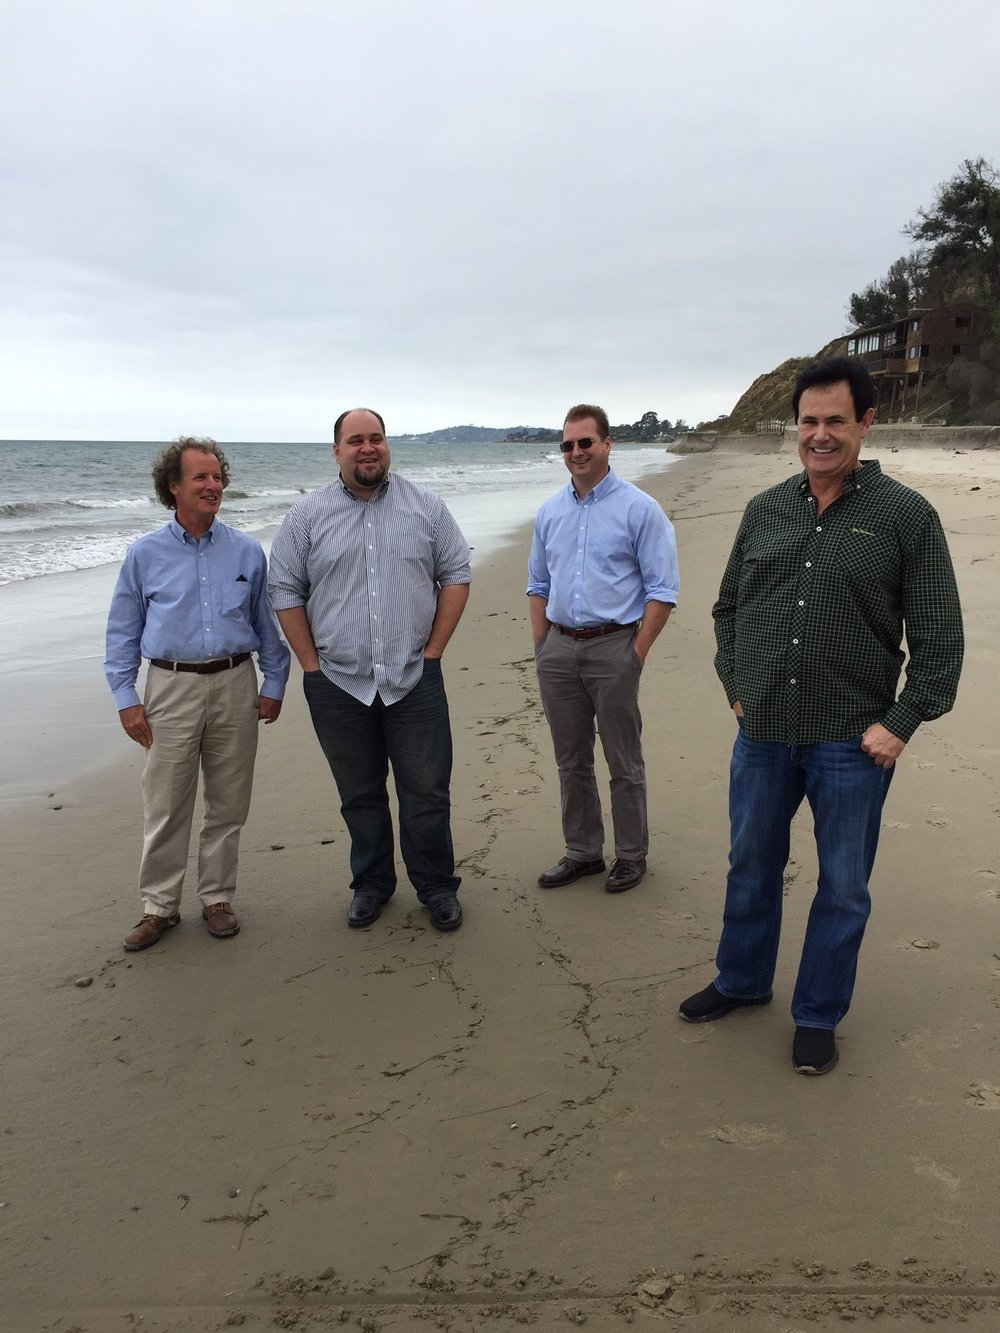 State Lands Commission Officials at Summerland Beach. Photo by Hillary Hauser.